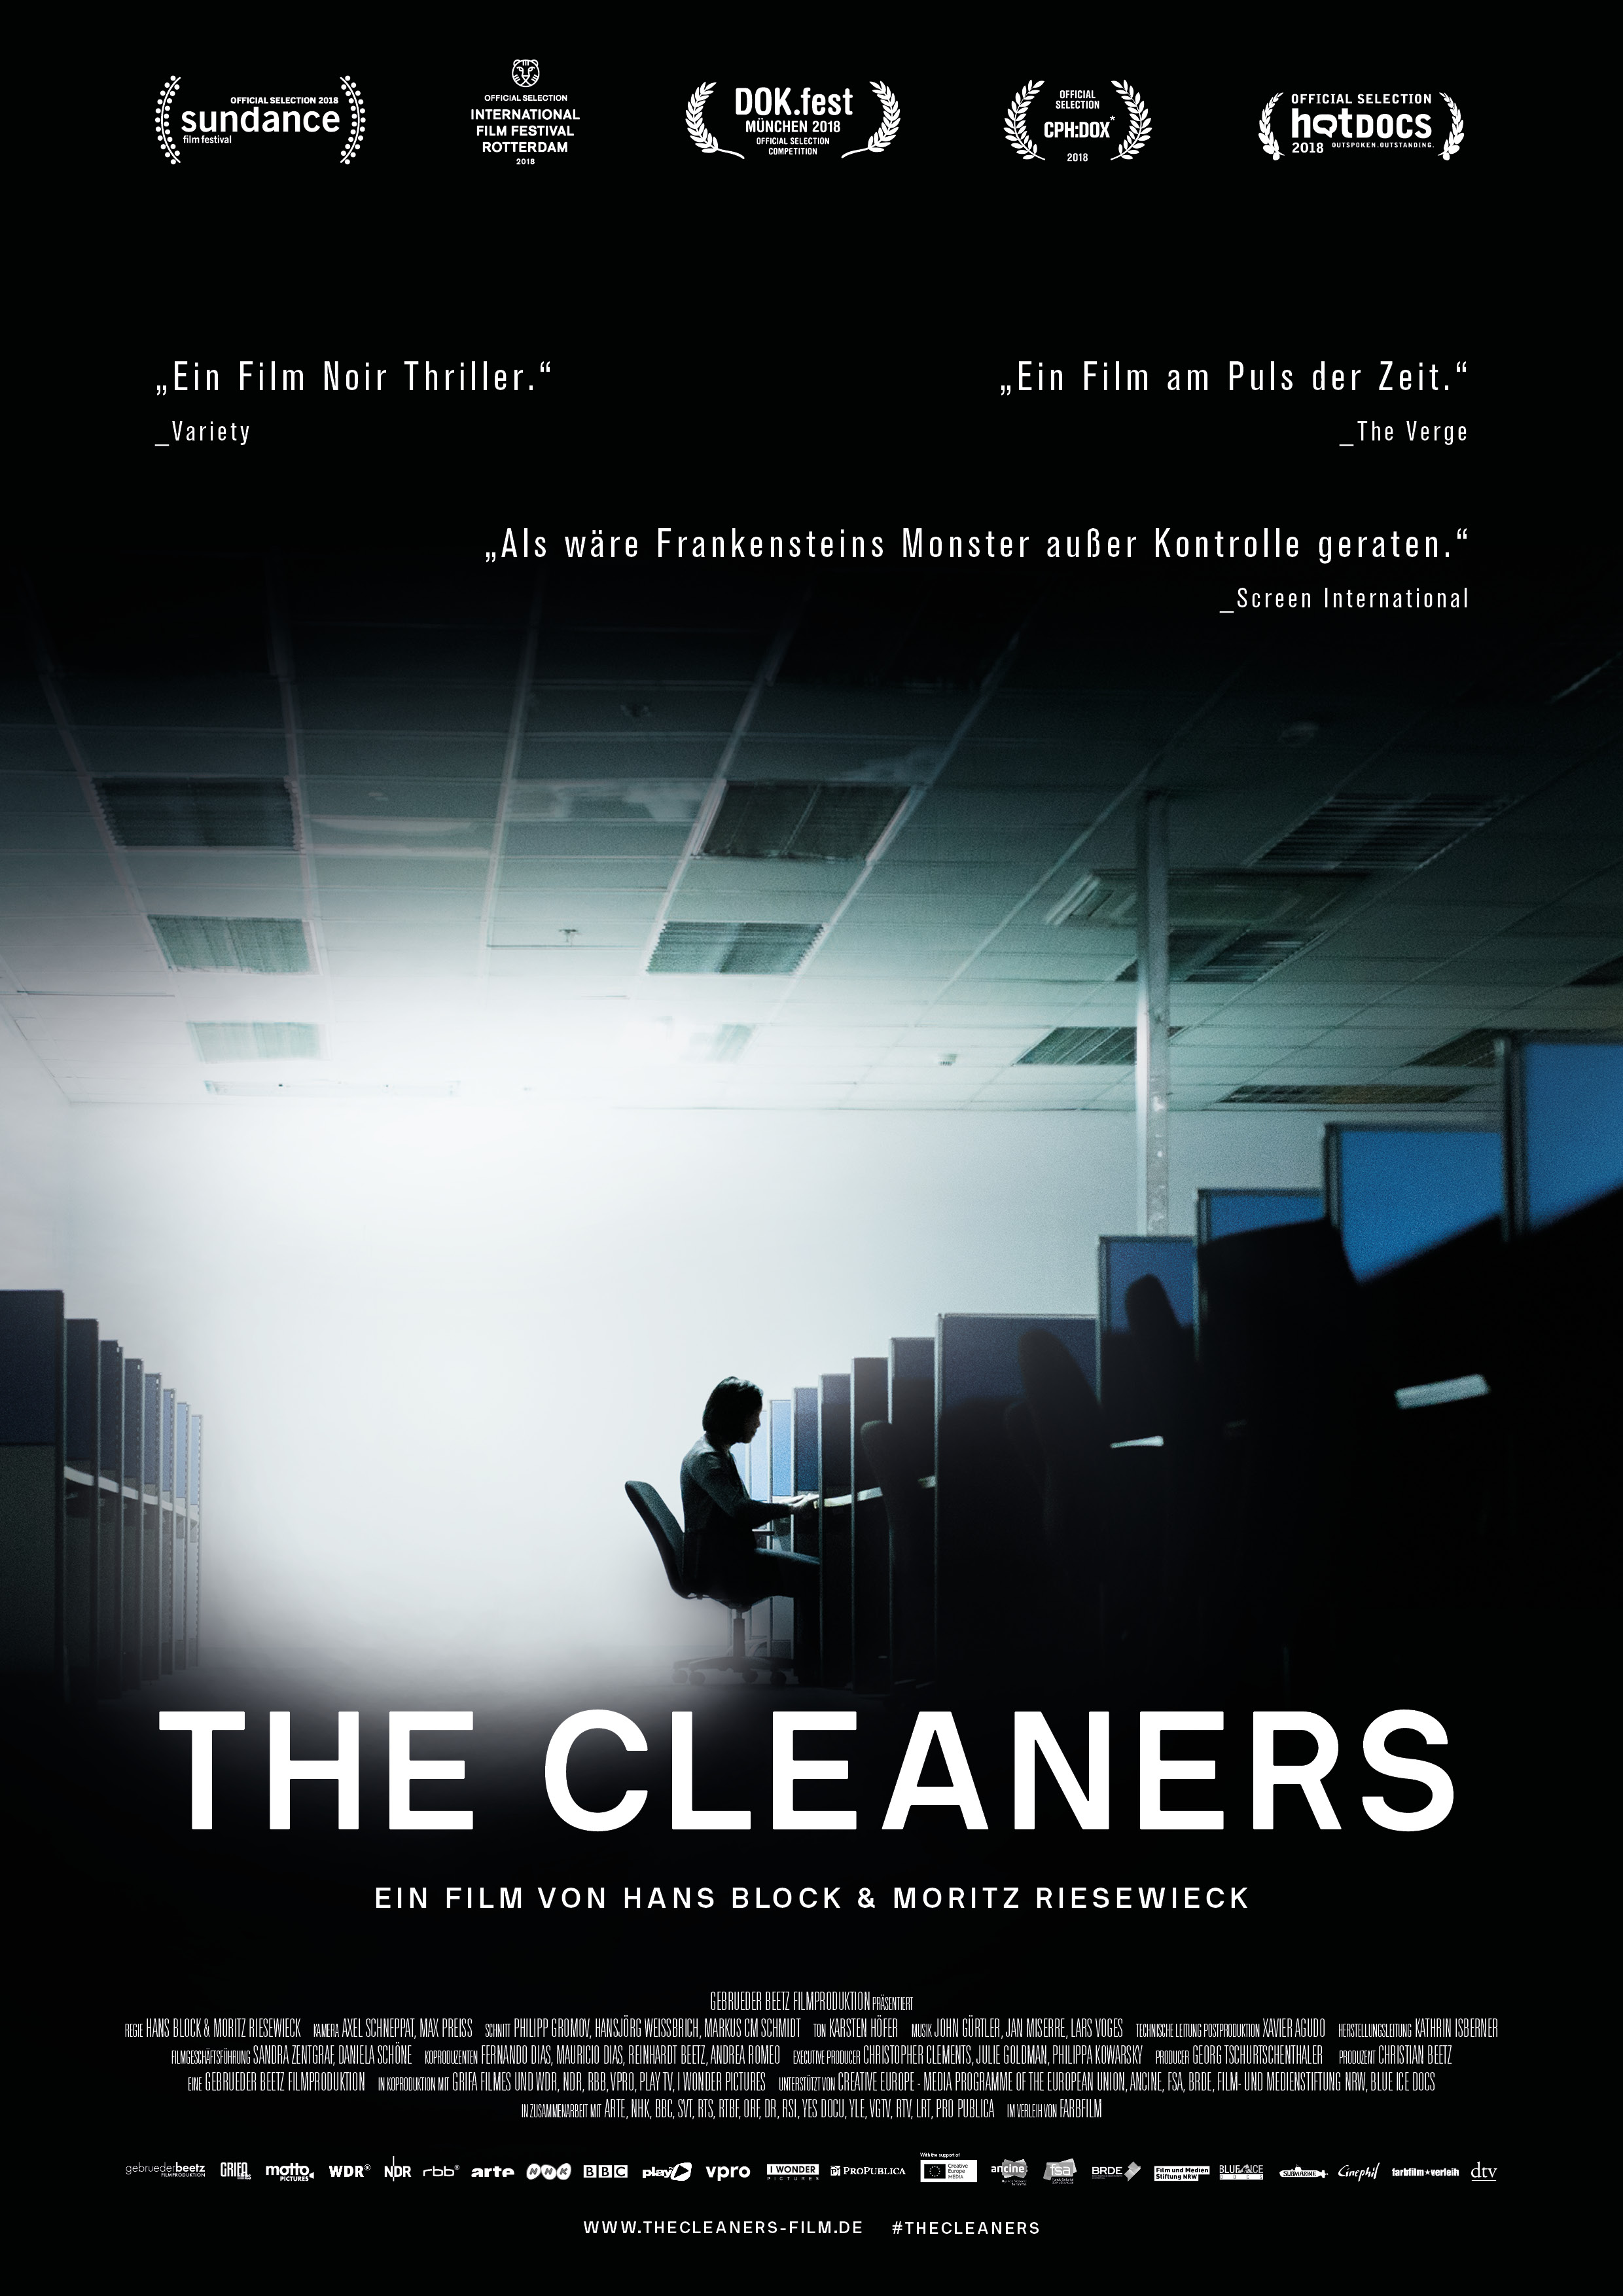 Filmplakat THE CLEANERS © farbfilm verleih GmbH 2018